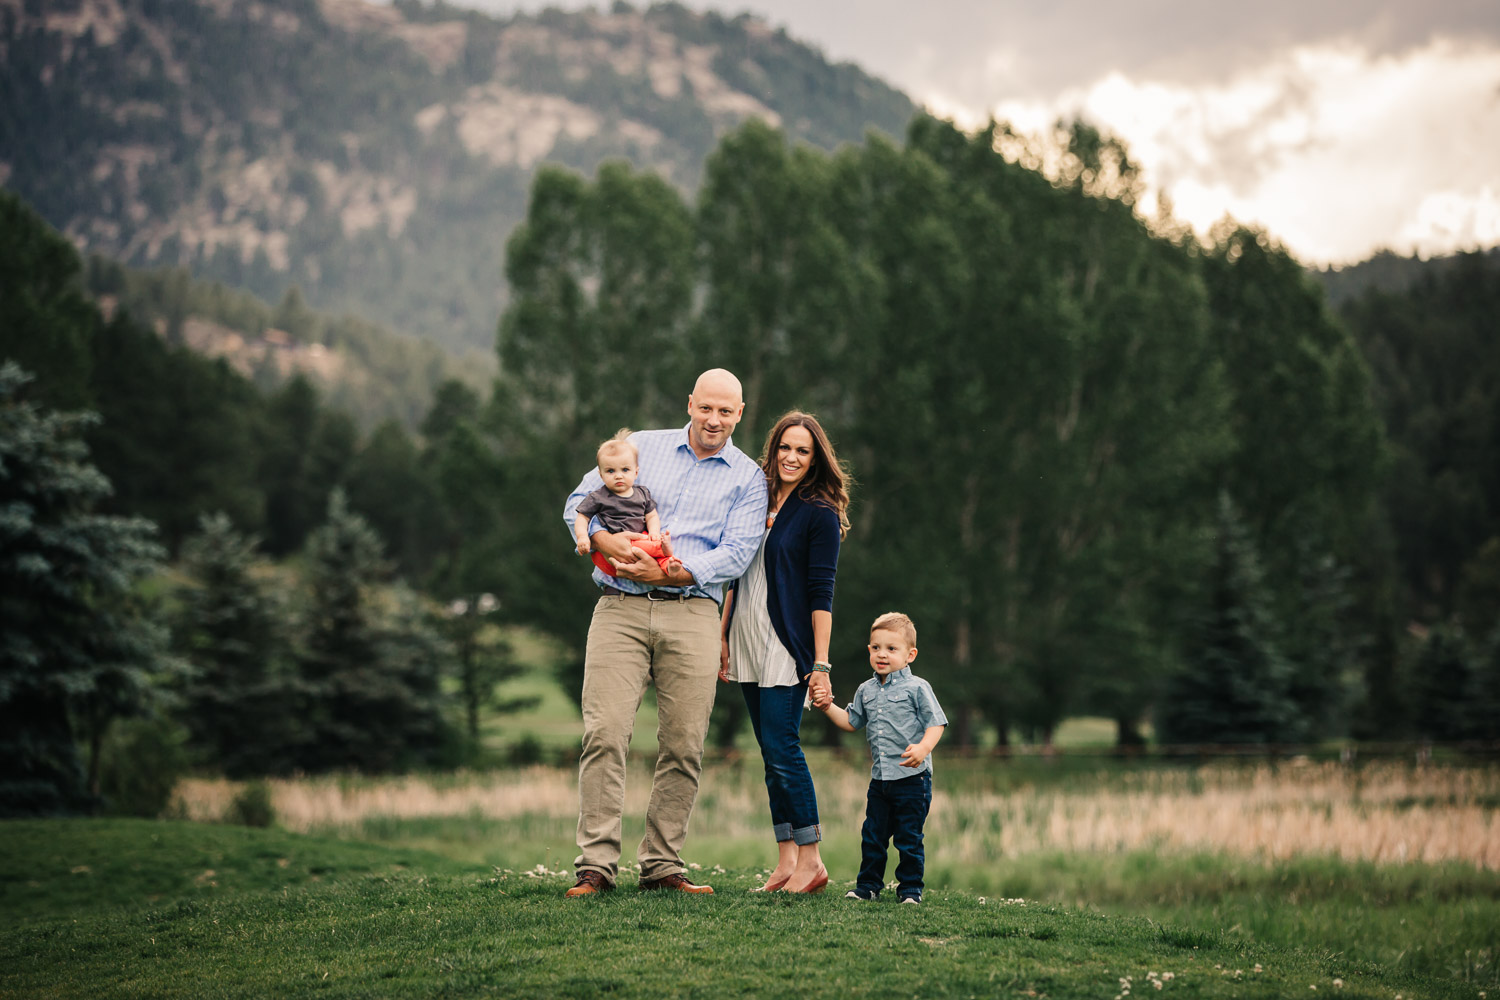 Phoenix family photography session outdoors mountains sun light candid colorful